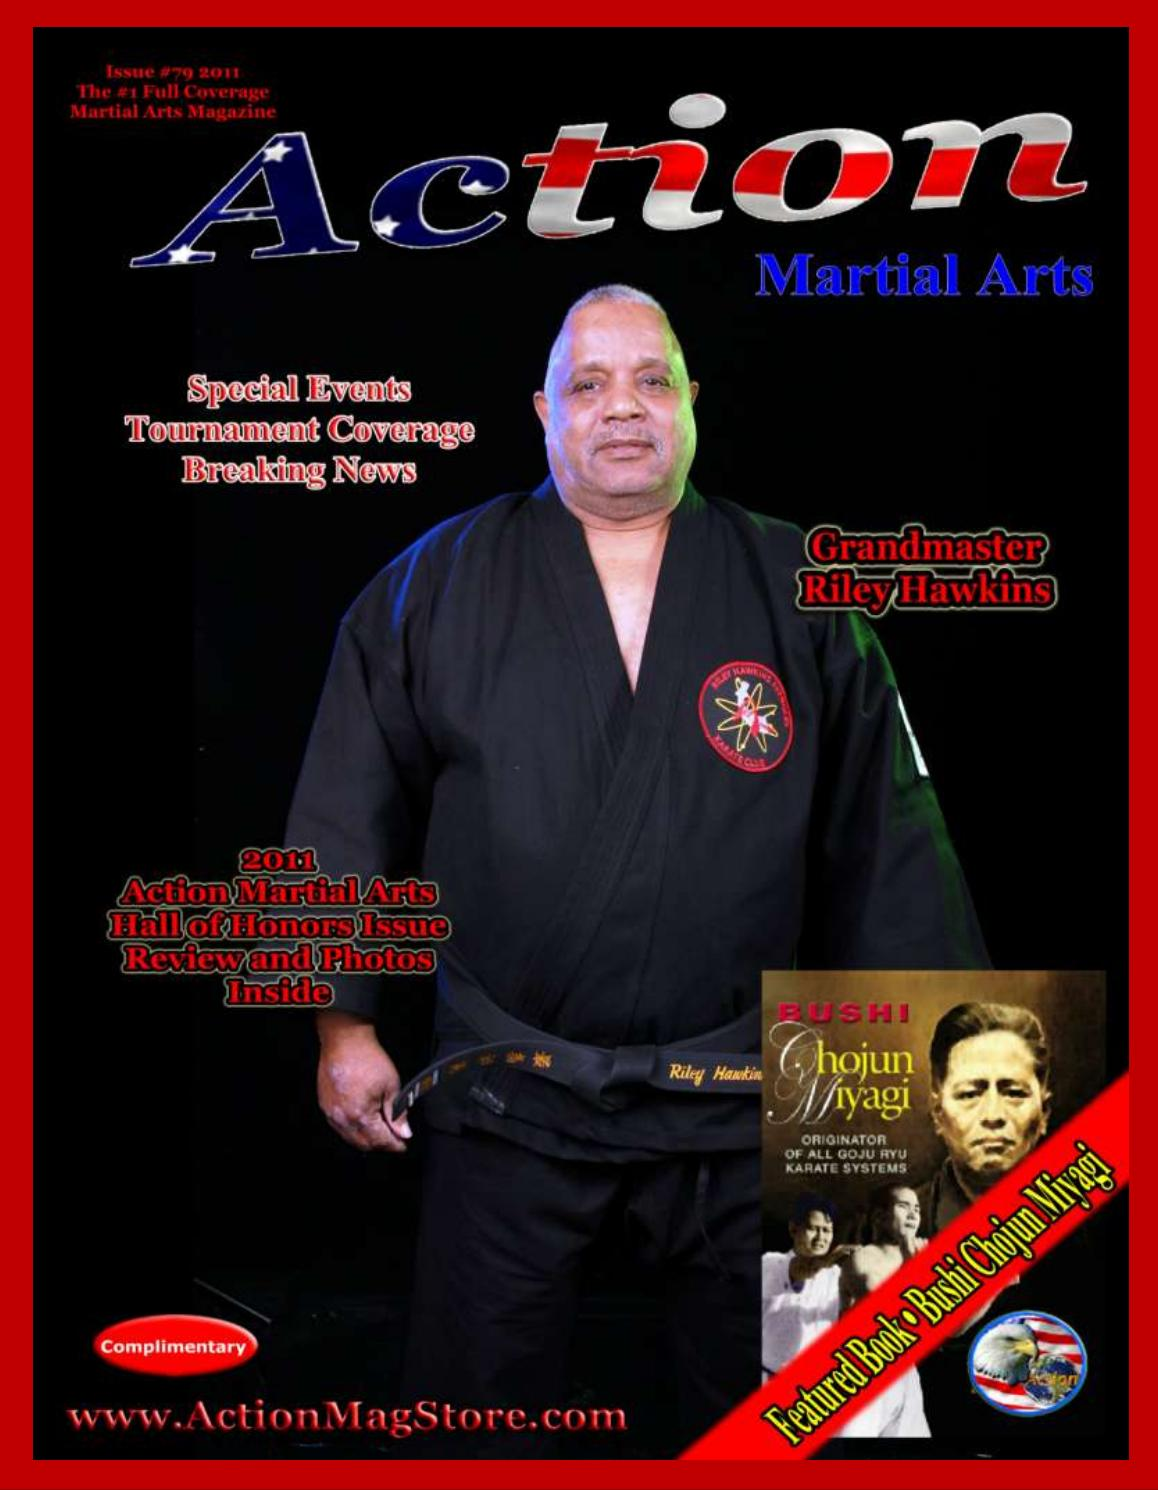 Action Martial Arts Magazine #79 by Action Martial Arts Magazine - issuu